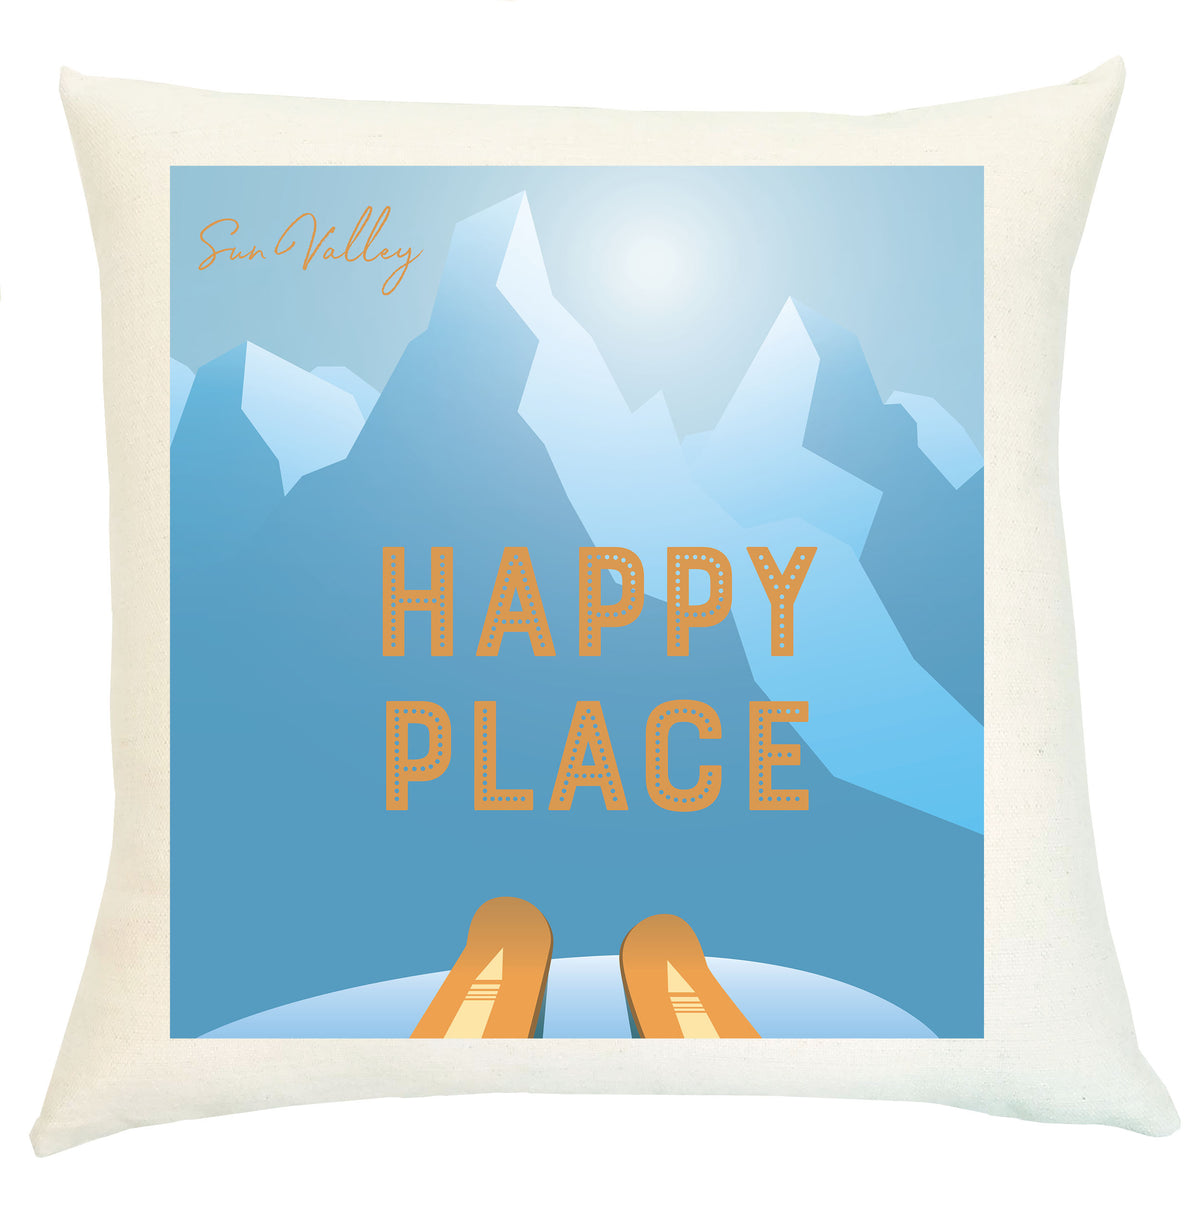 Pillow Personalized - Happy Place with Family Name or Location